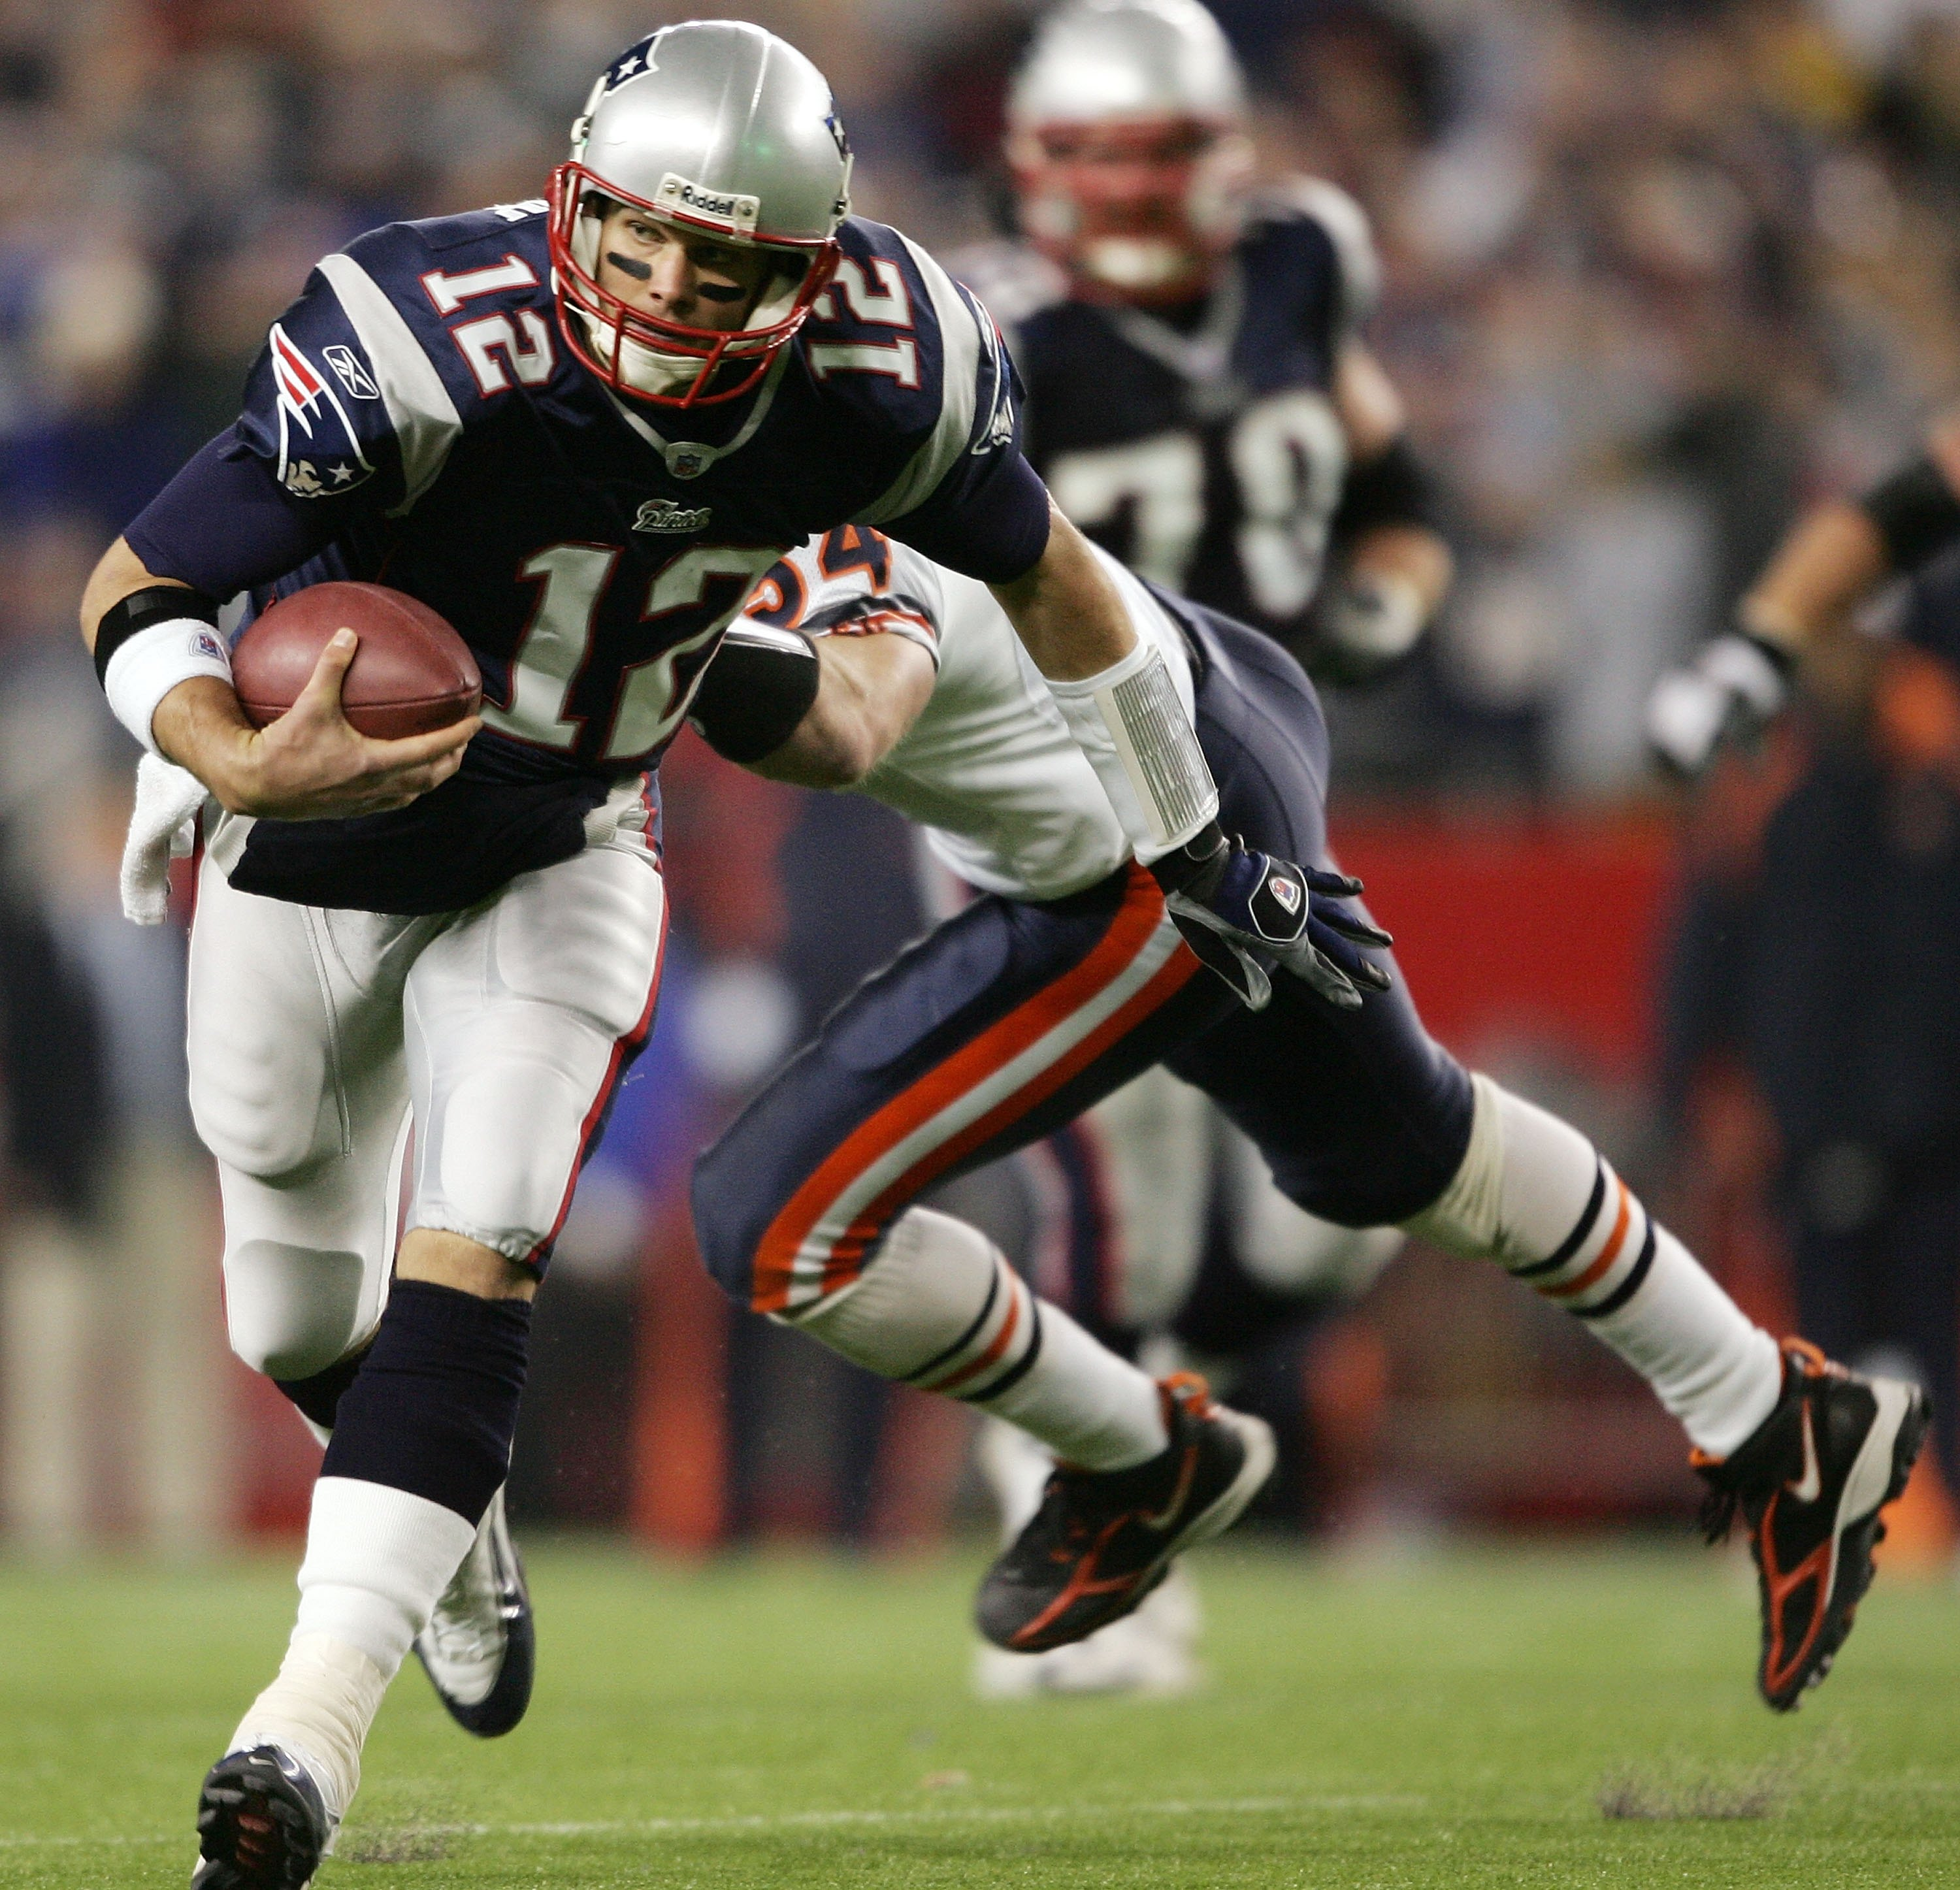 FOXBORO, MA - NOVEMBER 26:  Tom Brady #12 of the New England Patriots slips past Brian Urlacher #54 of the Chicago Bears to get the first down on November 26, 2006 at Gillette Stadium in Foxboro, Massachusetts. The New England Patriots defeated the Chicag